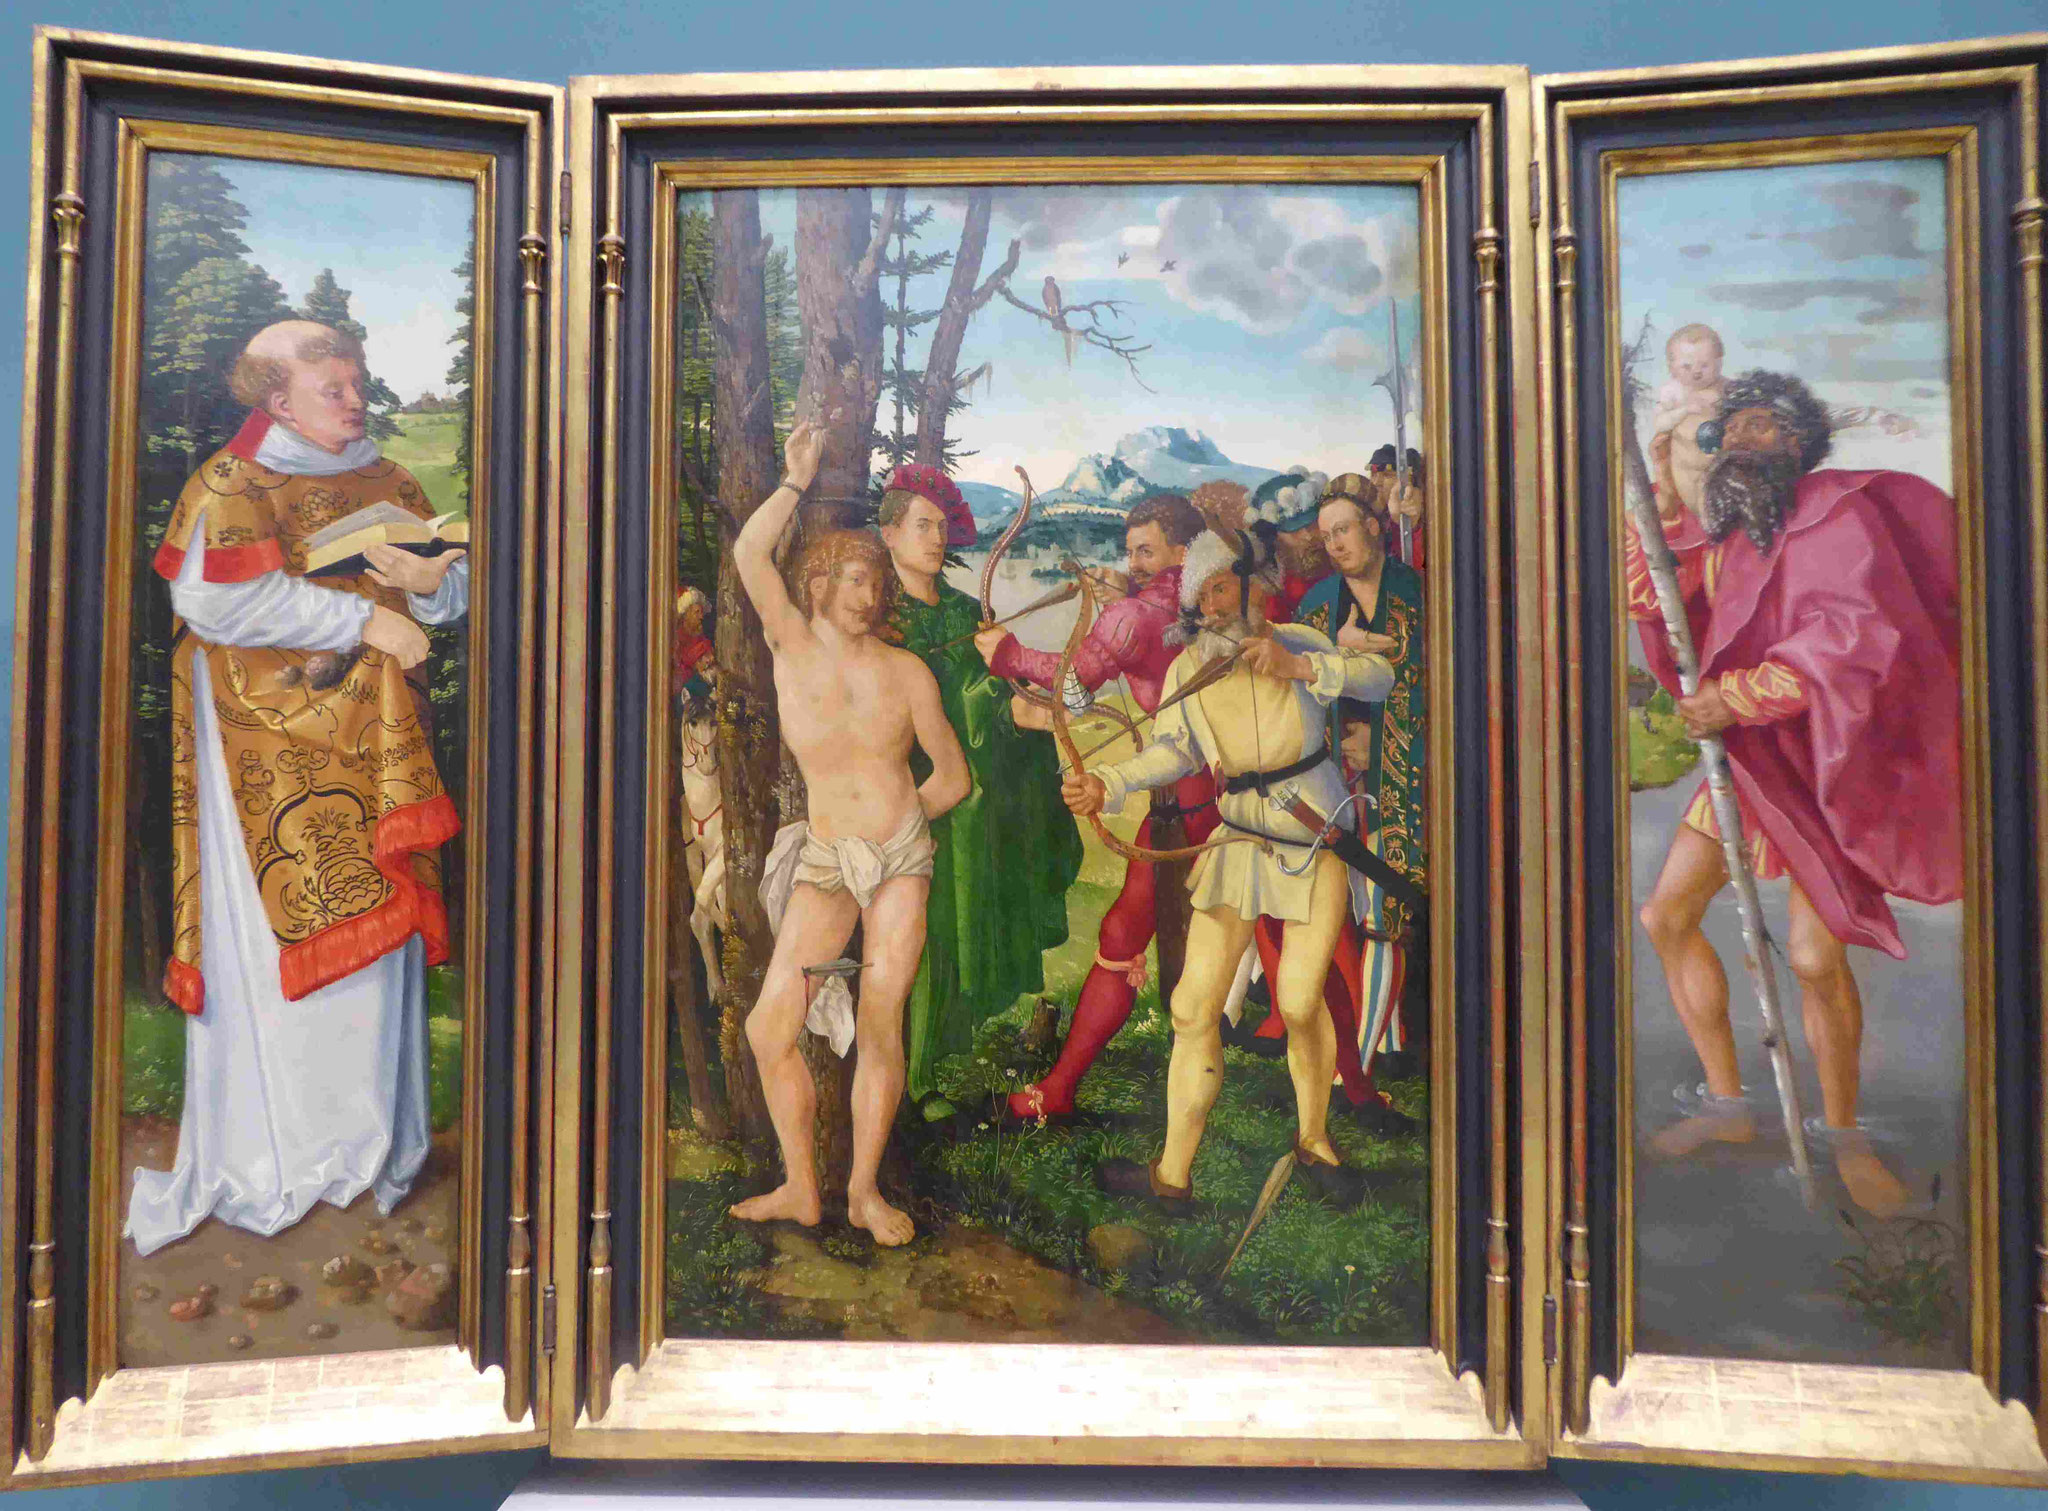 Hans Baldung Grien, Tryptichon, Germanisches Nationalmuseum Nürnberg